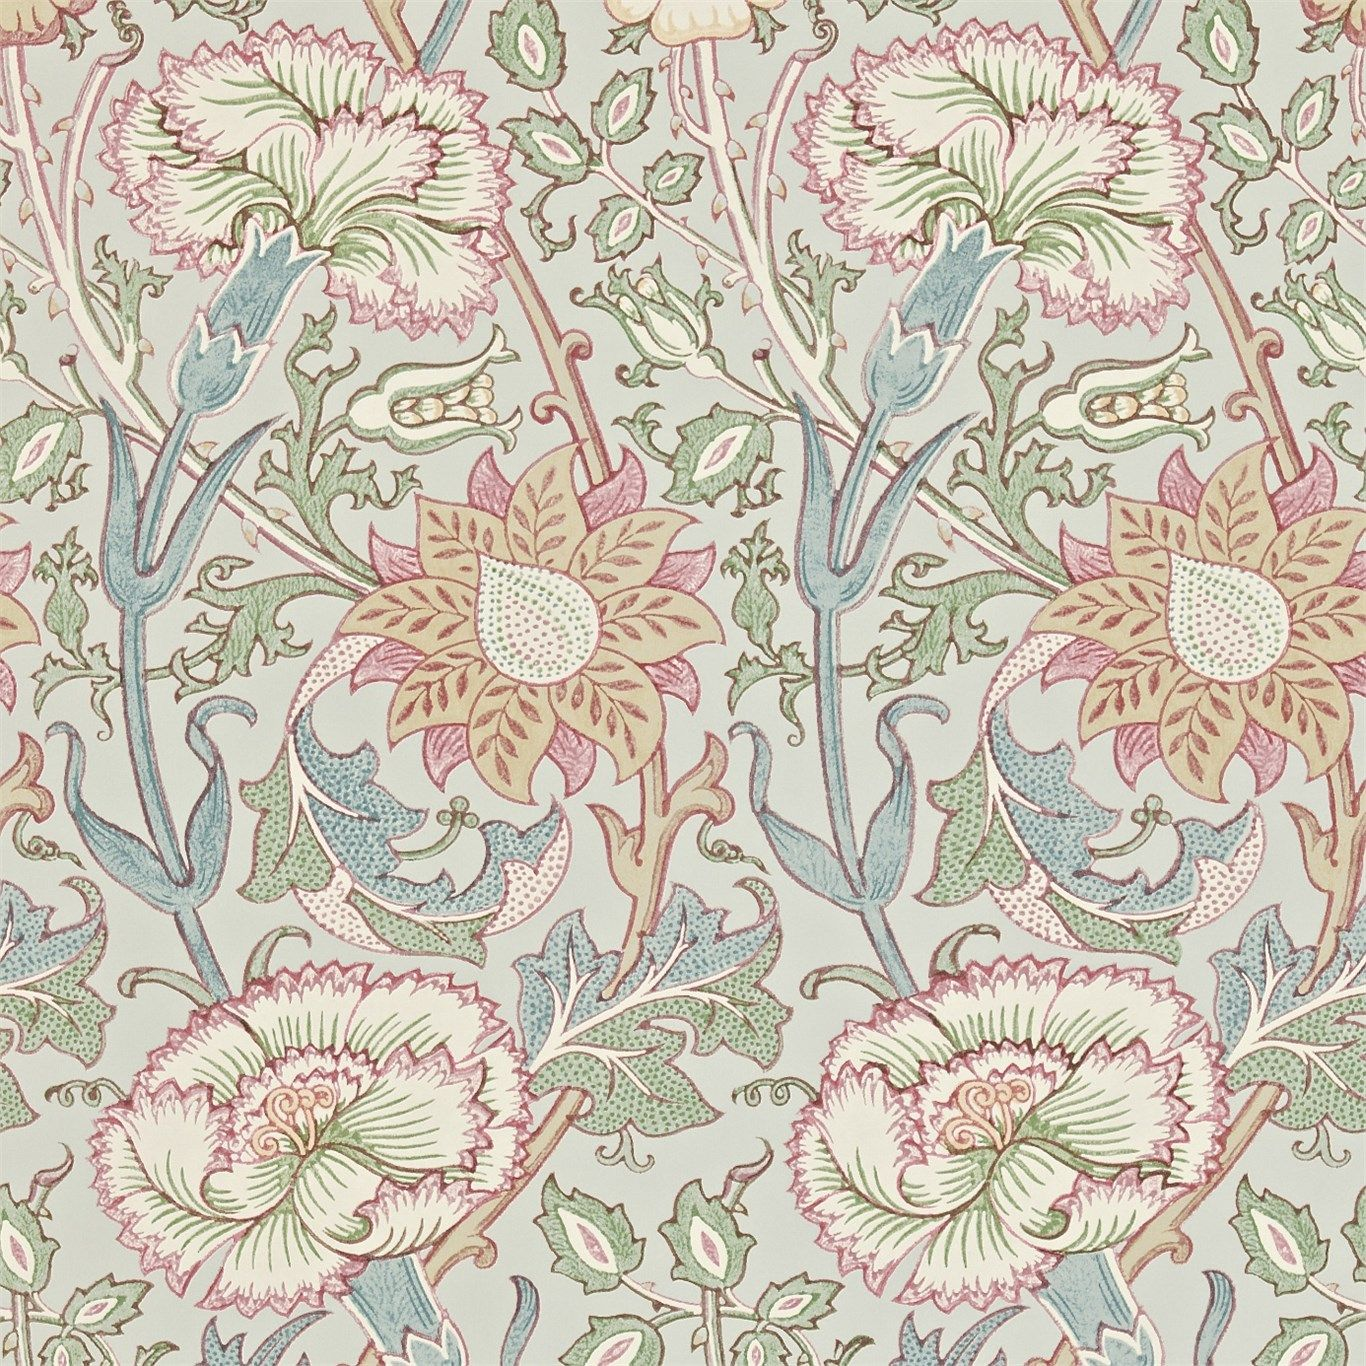 The Original Morris Co Arts And Crafts Fabrics And Wallpaper Designs By William Morris Company Products British Uk Fabrics Uilyam Morris Oboi Ampir